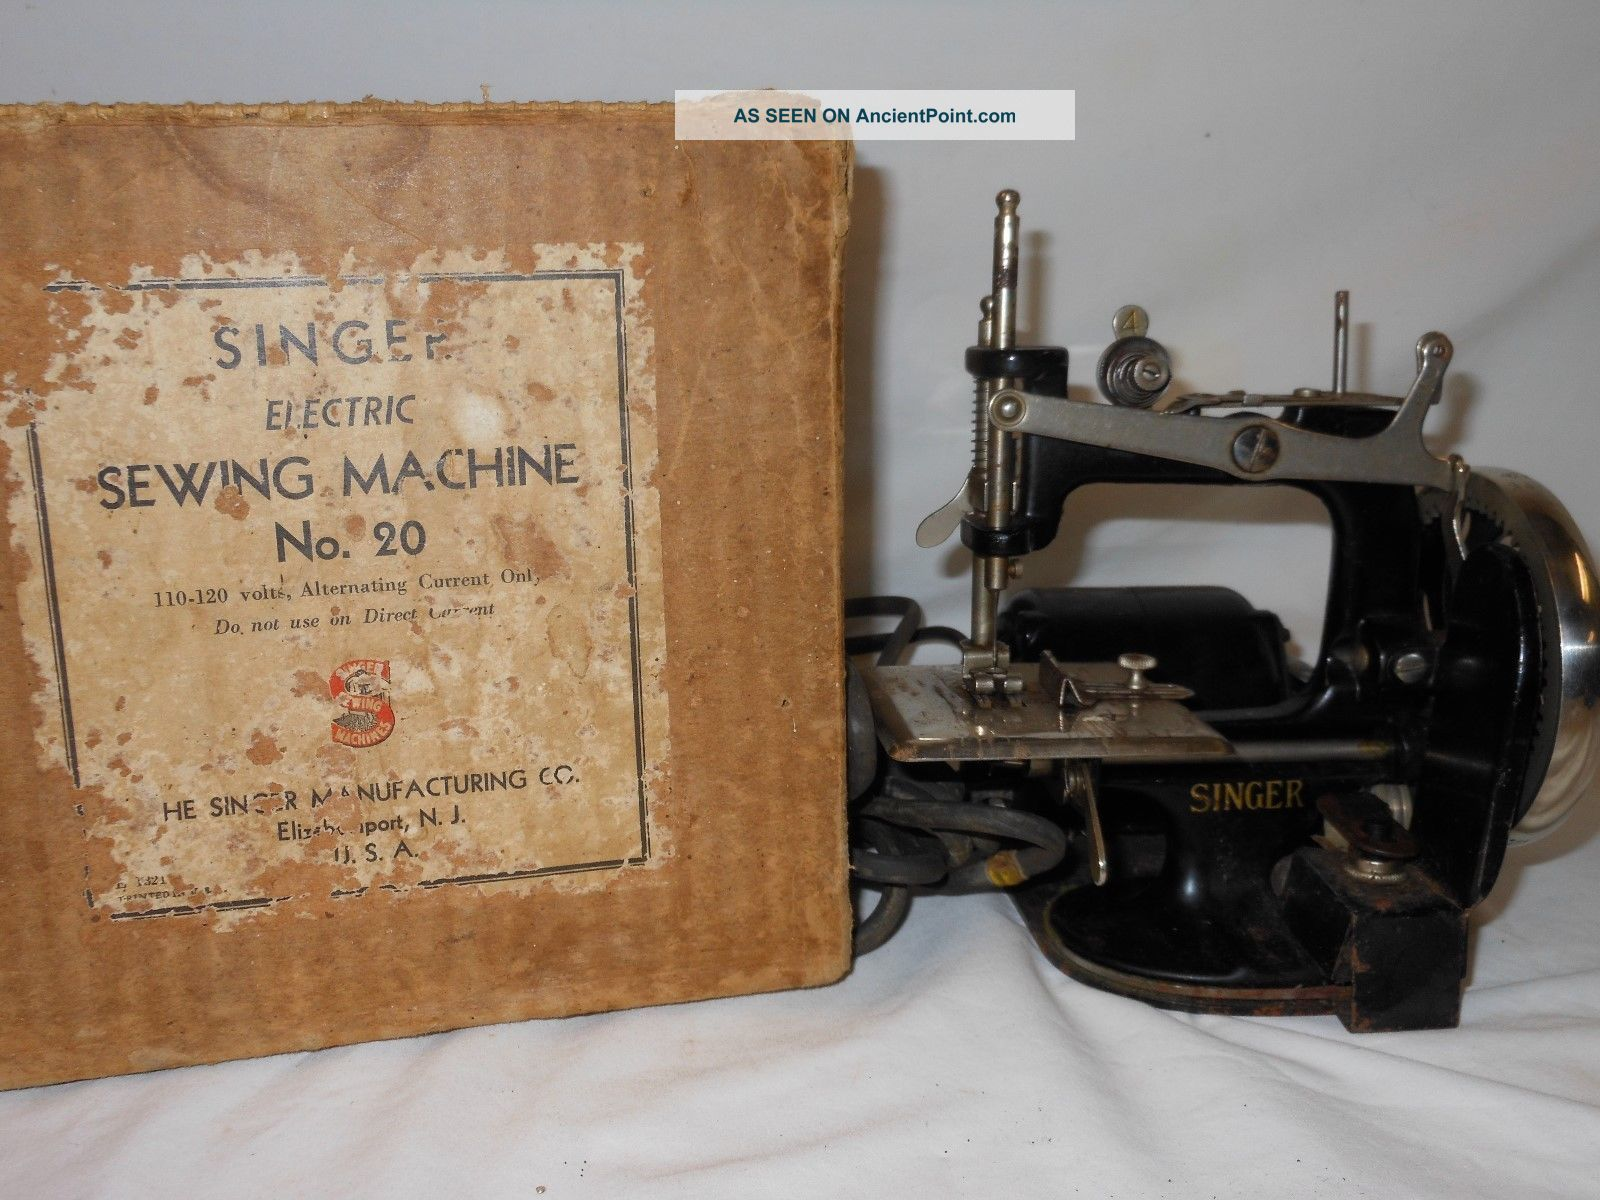 1920s Singer Miniature Sewing Machine Electric Toy Child Size No.  20 Sewing Machines photo